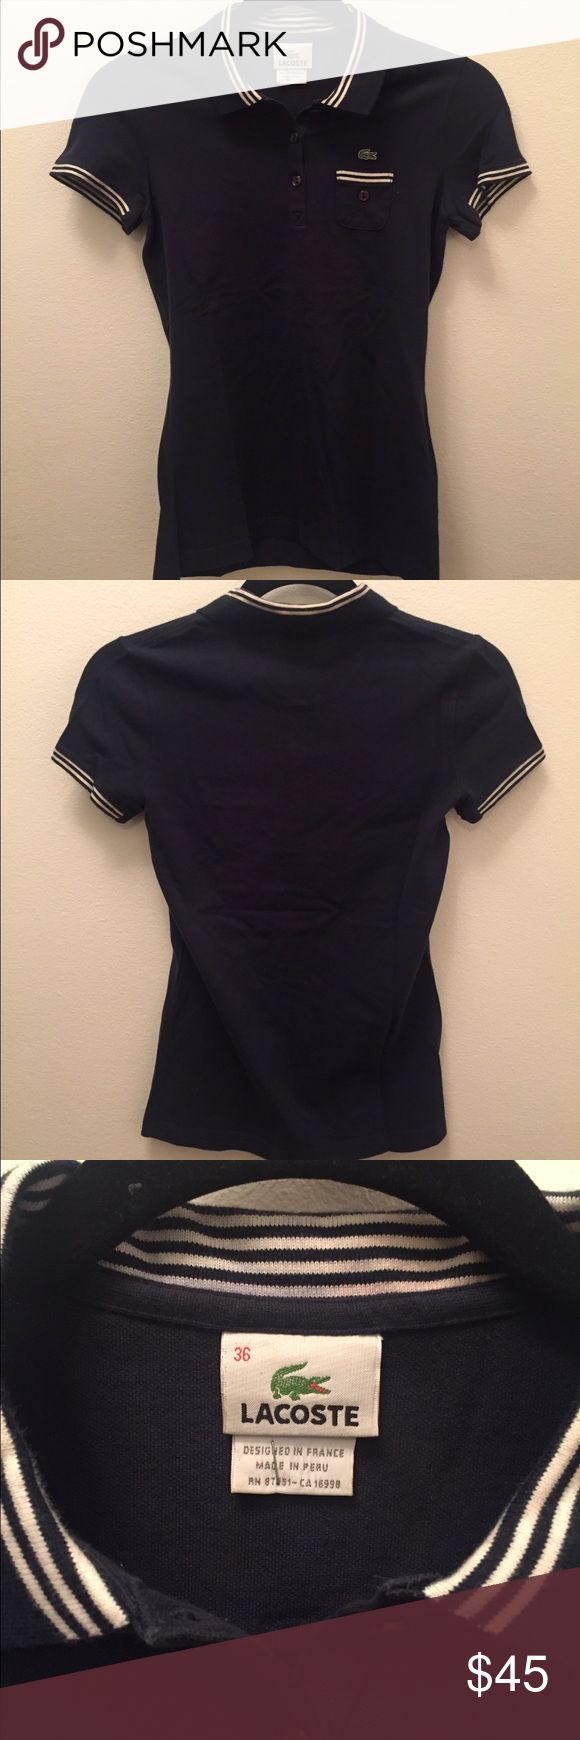 Lacoste polo shirt Navy Lacoste Polo shirt women's size 36. New without tags. Never worn. Message me if interested :) the size is 36 which is a US Small. Lacoste Tops